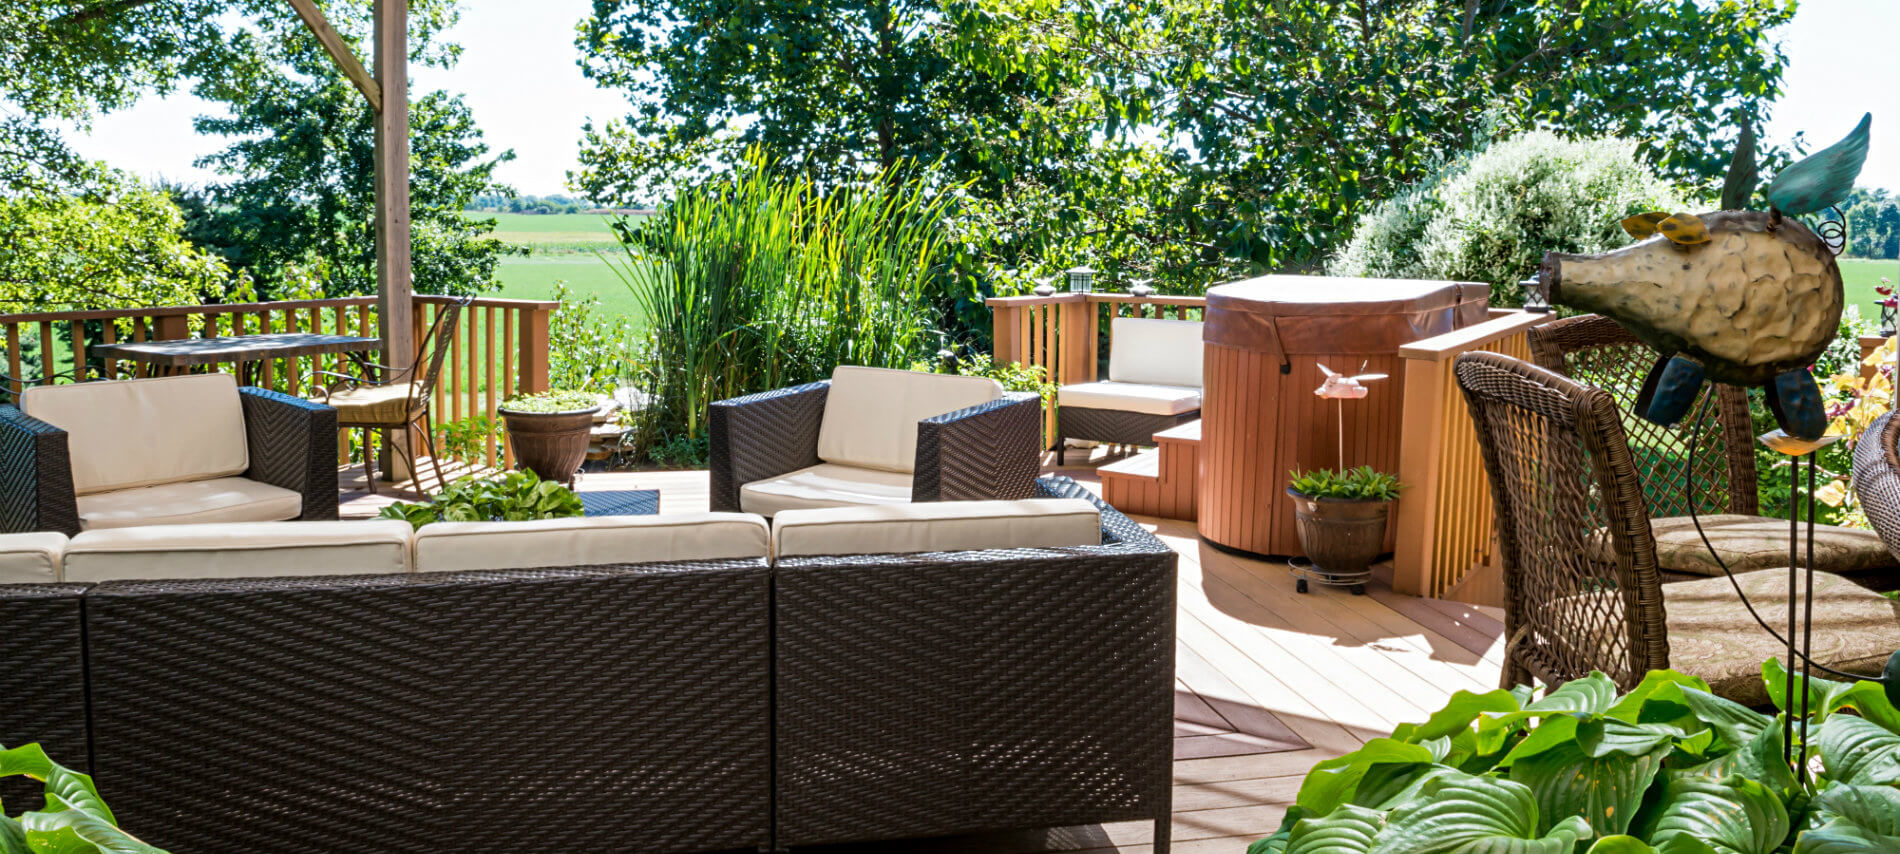 Deck with outside furniture, plants and a view of farmland.